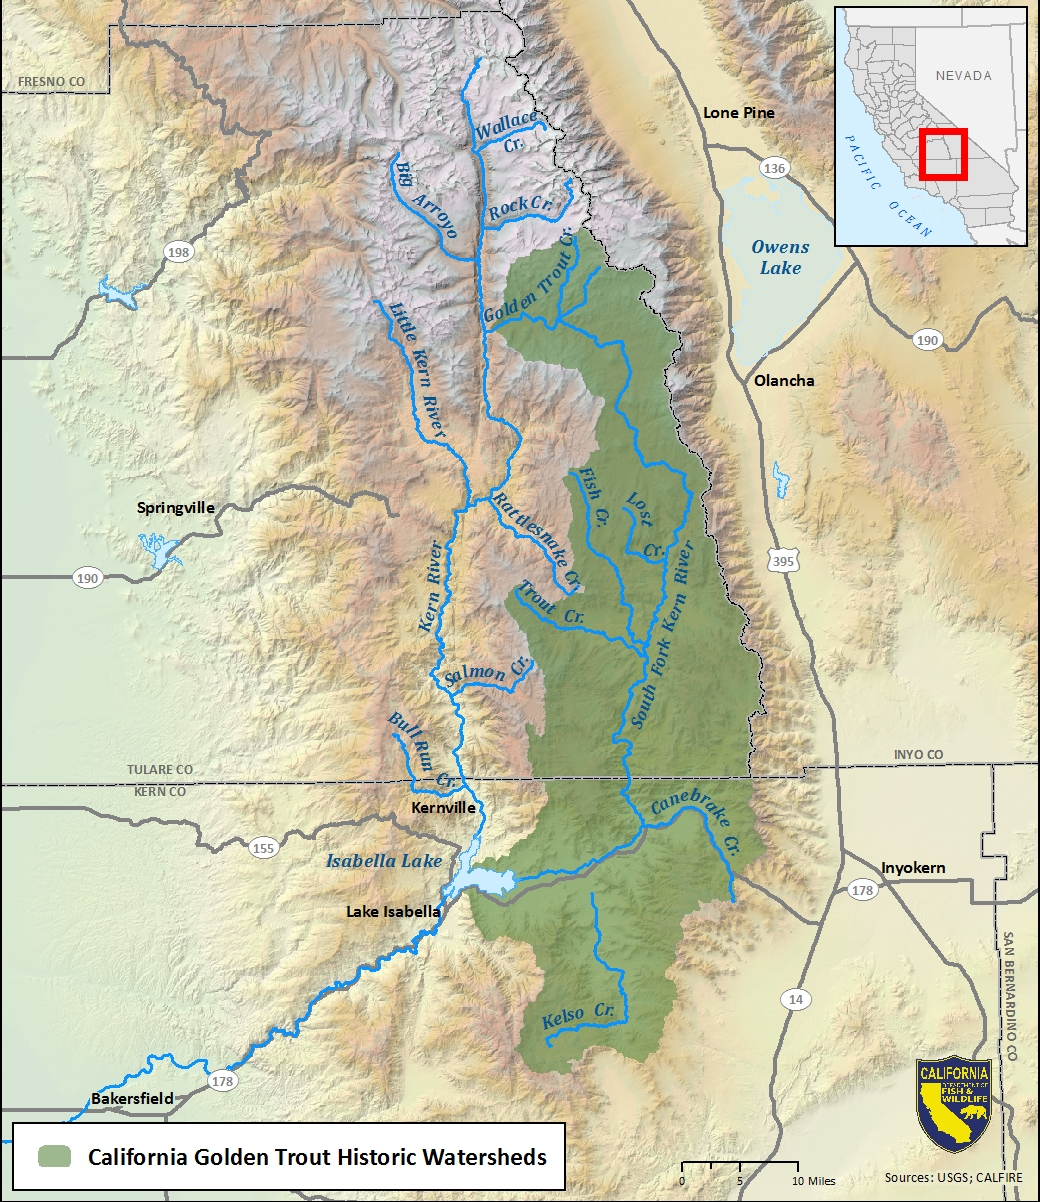 Map of California golden trout historic watershed-link opens in new window